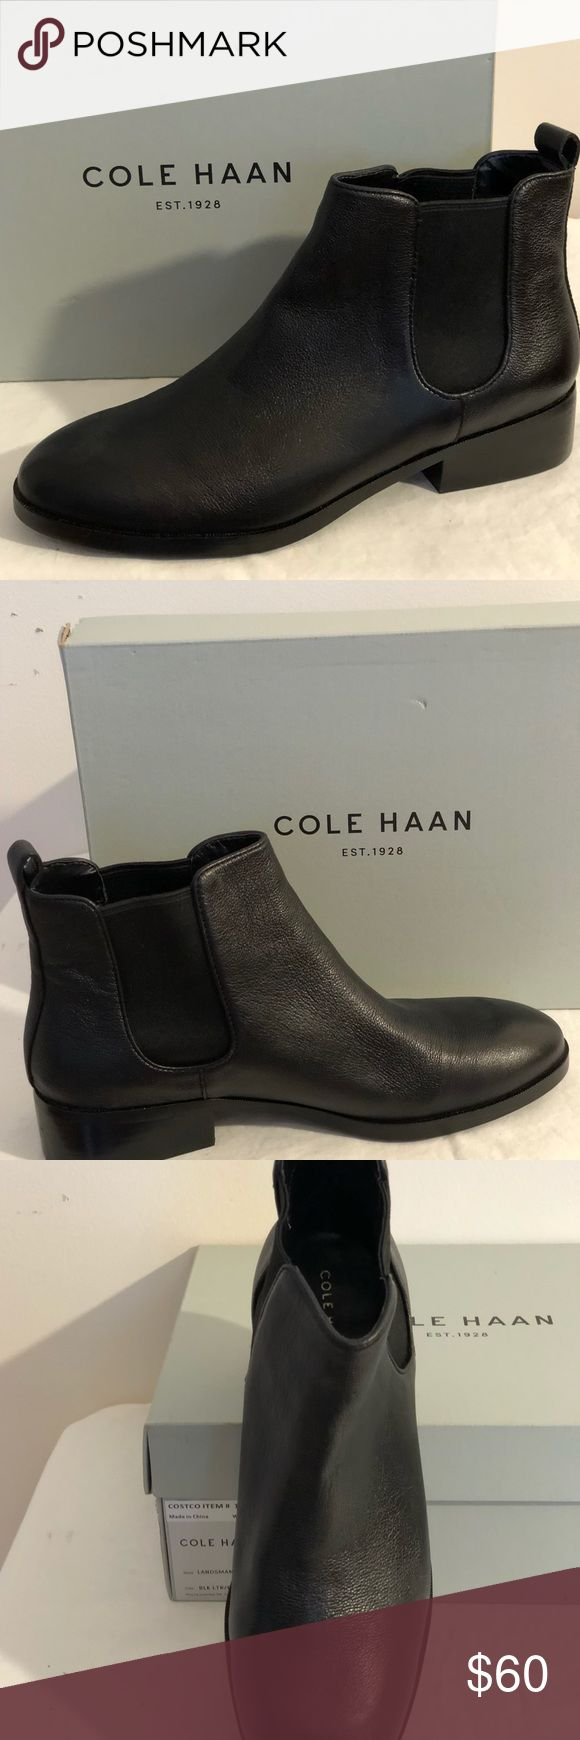 Cole Haan Leather Landsman Boot This chelsea style boot is a must have for every wardrobe! COLE HAAN a brand that is synonymous with quality footwear. These are brand new, in the box. They are offered at a price that won't put a dent in your wallet! Cole Haan Shoes Ankle Boots & Booties